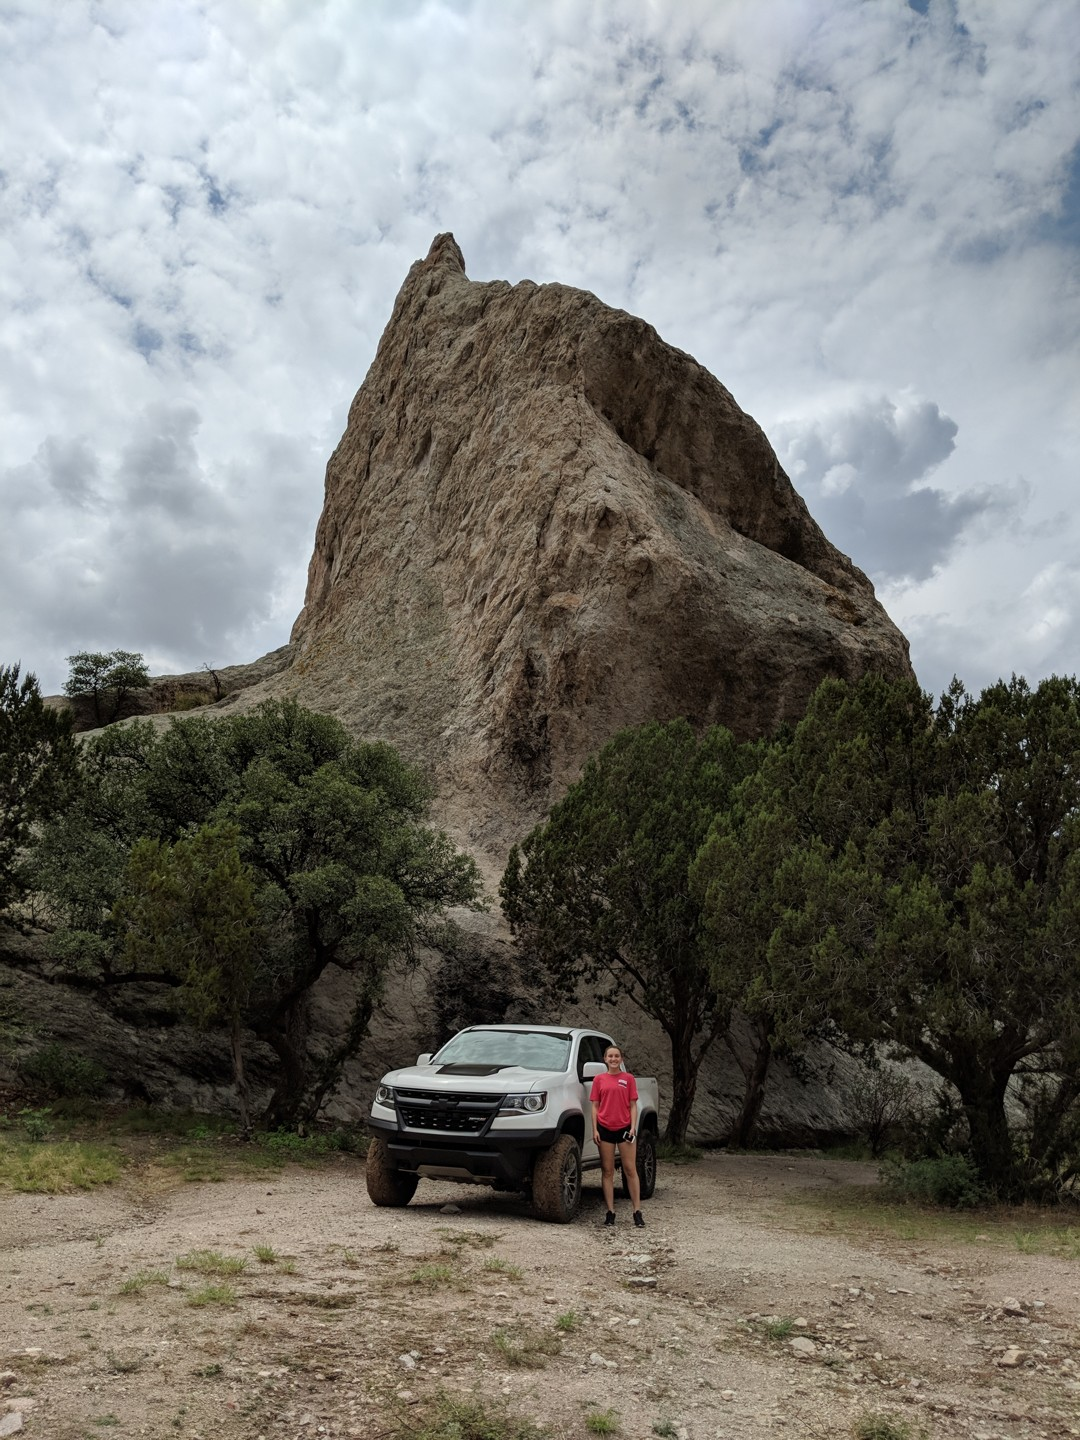 Trail Review: Chimney Rock